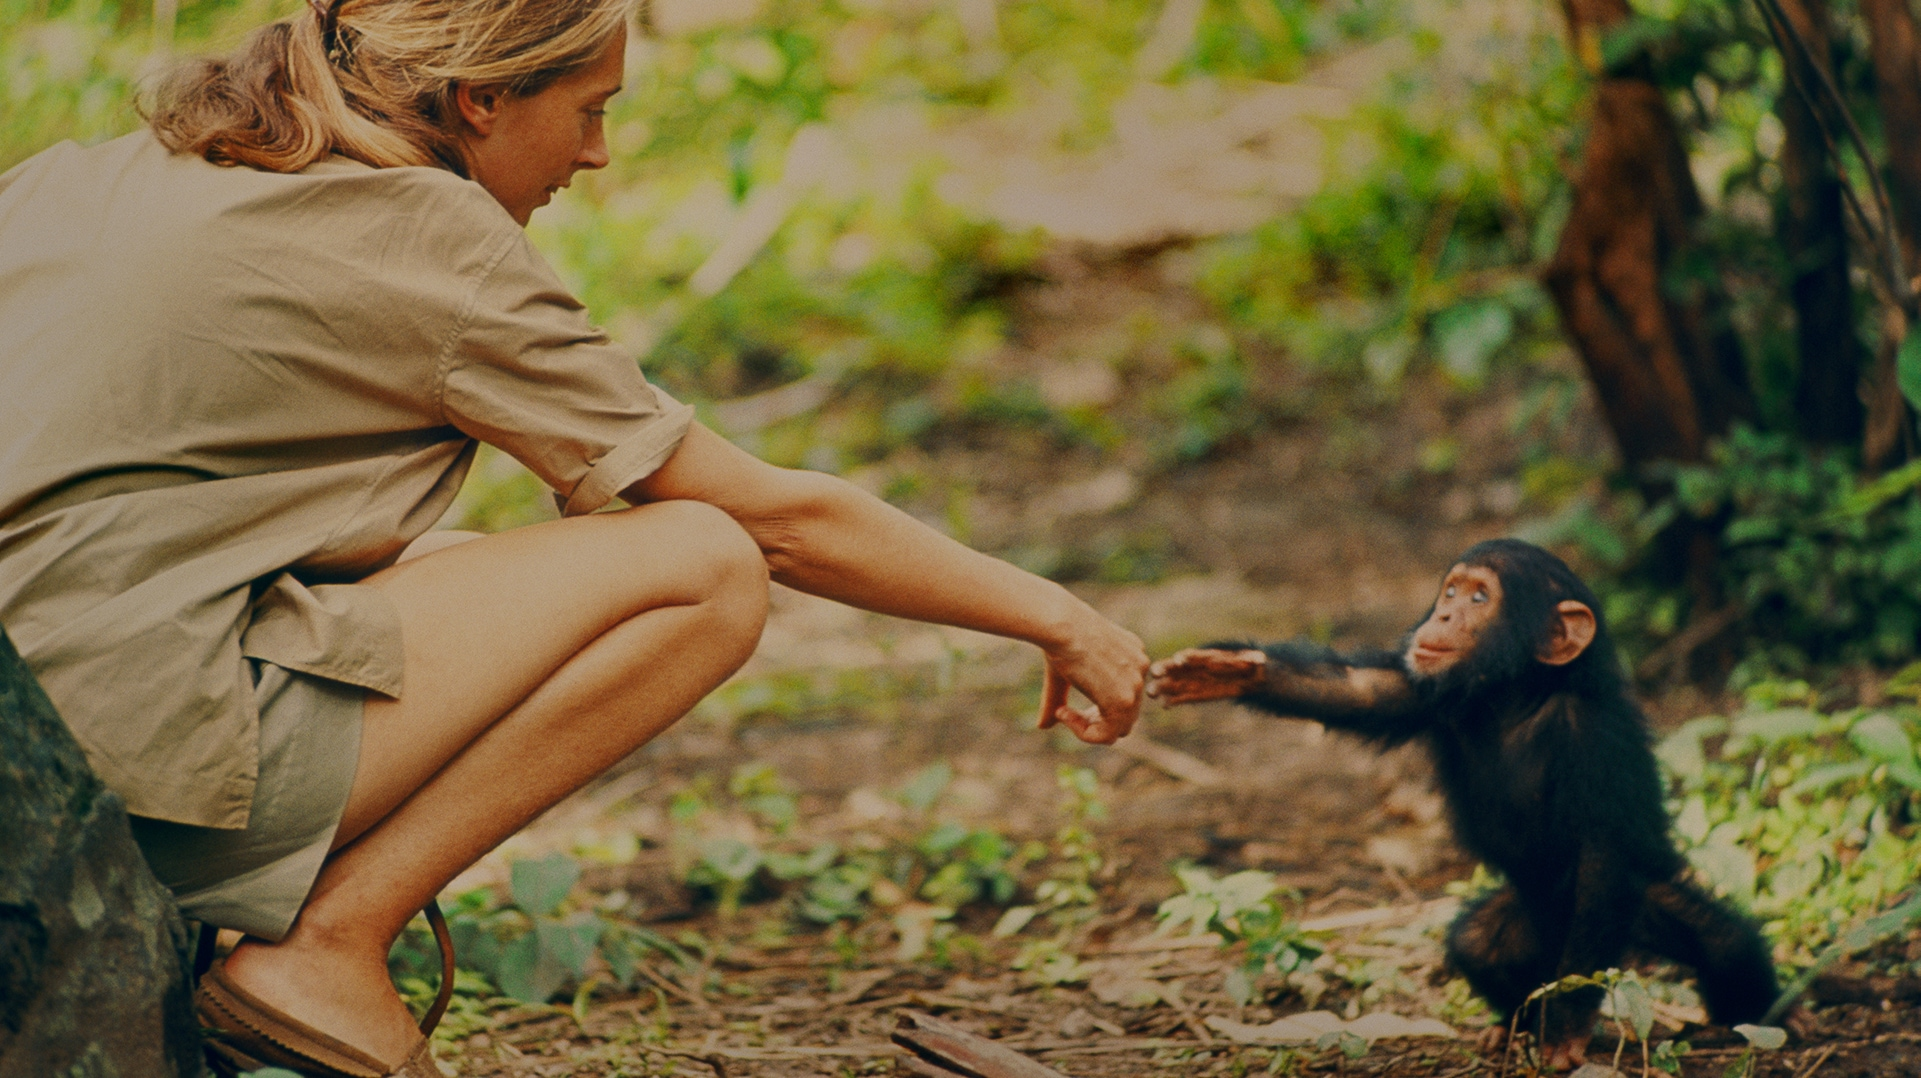 Jane Goodall and infant chimpanzee Flint reach out to touch each other's hands. Flint was the first infant born at Gombe after Jane arrived. With him she had a great opportunity to study chimp development—and to have physical contact, which is no longer deemed appropriate with chimps in the wild. (National Geographic Creative/ Hugo Van Lawick)